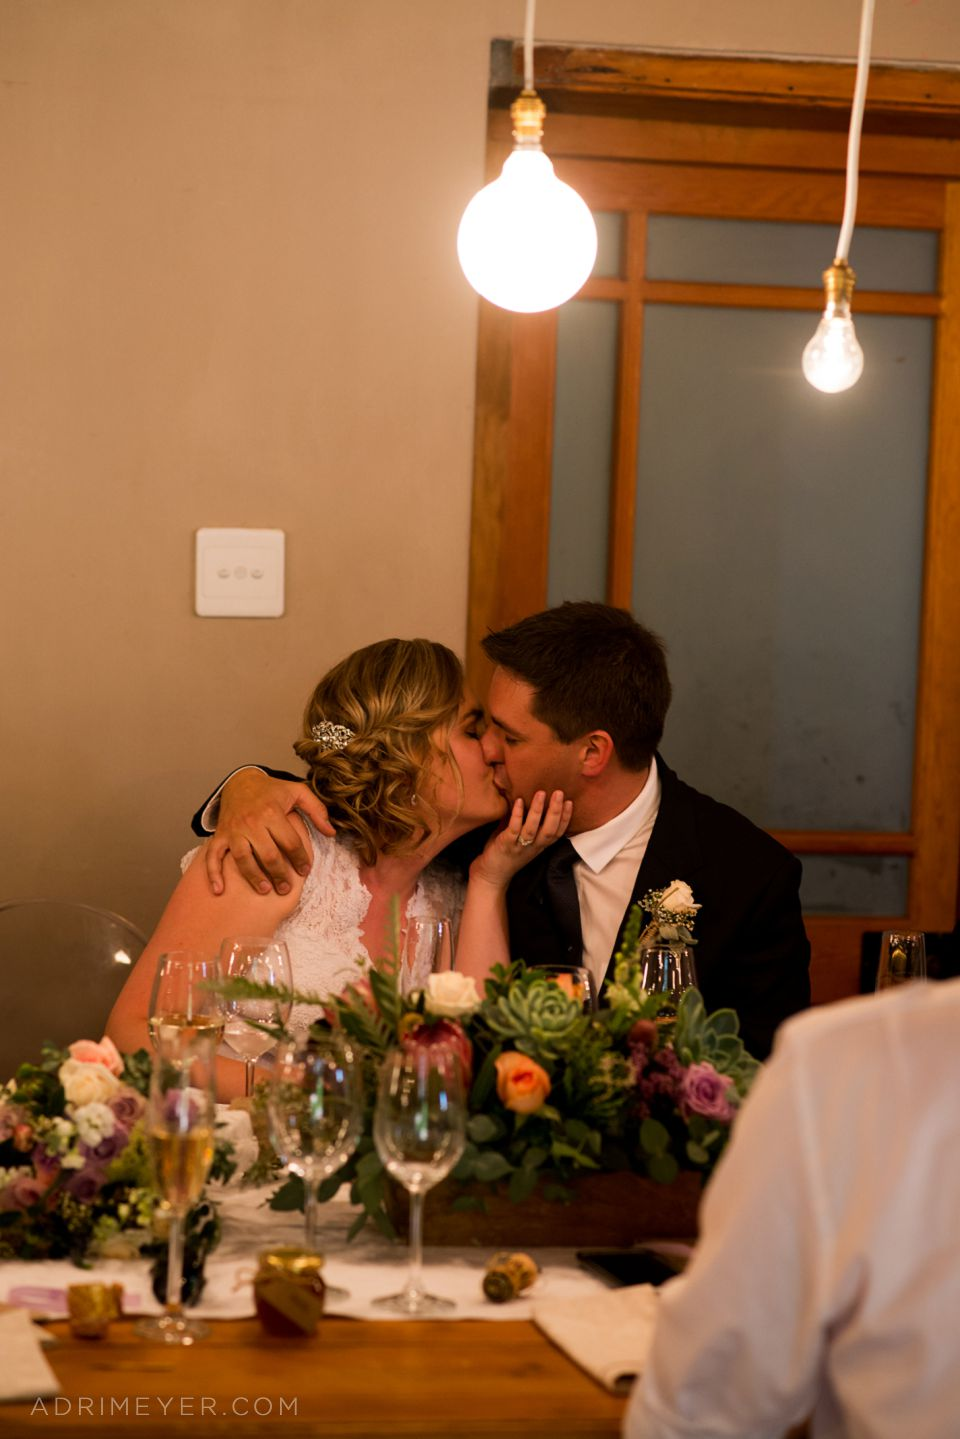 Adri Meyer Wedding Photography Langkloof Roses_0078